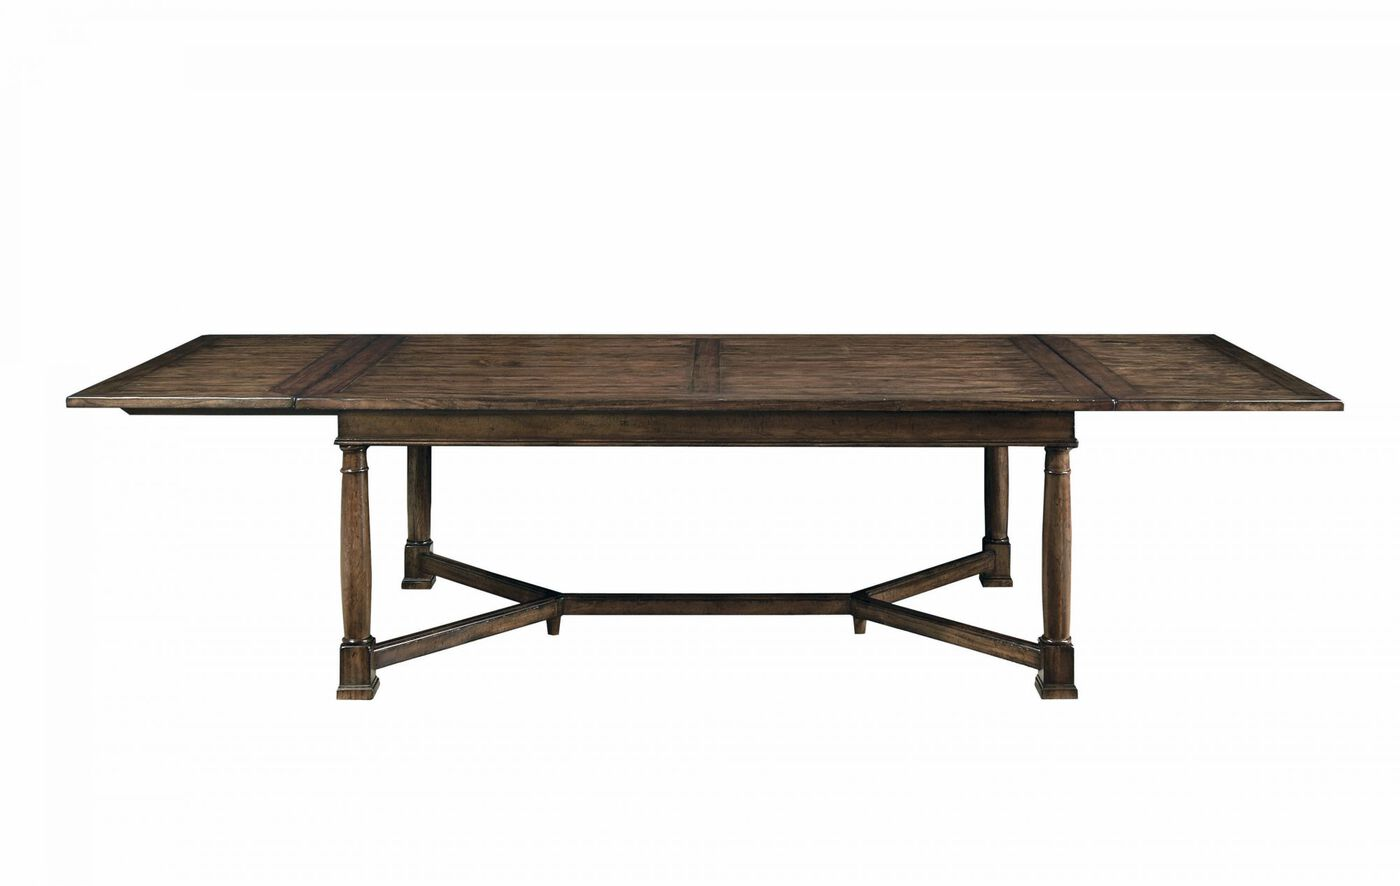 Bernhardt Vintage Patina Trestle Dining Table Mathis  : BHT 3225E047224 from www.mathisbrothers.com size 1400 x 886 jpeg 50kB